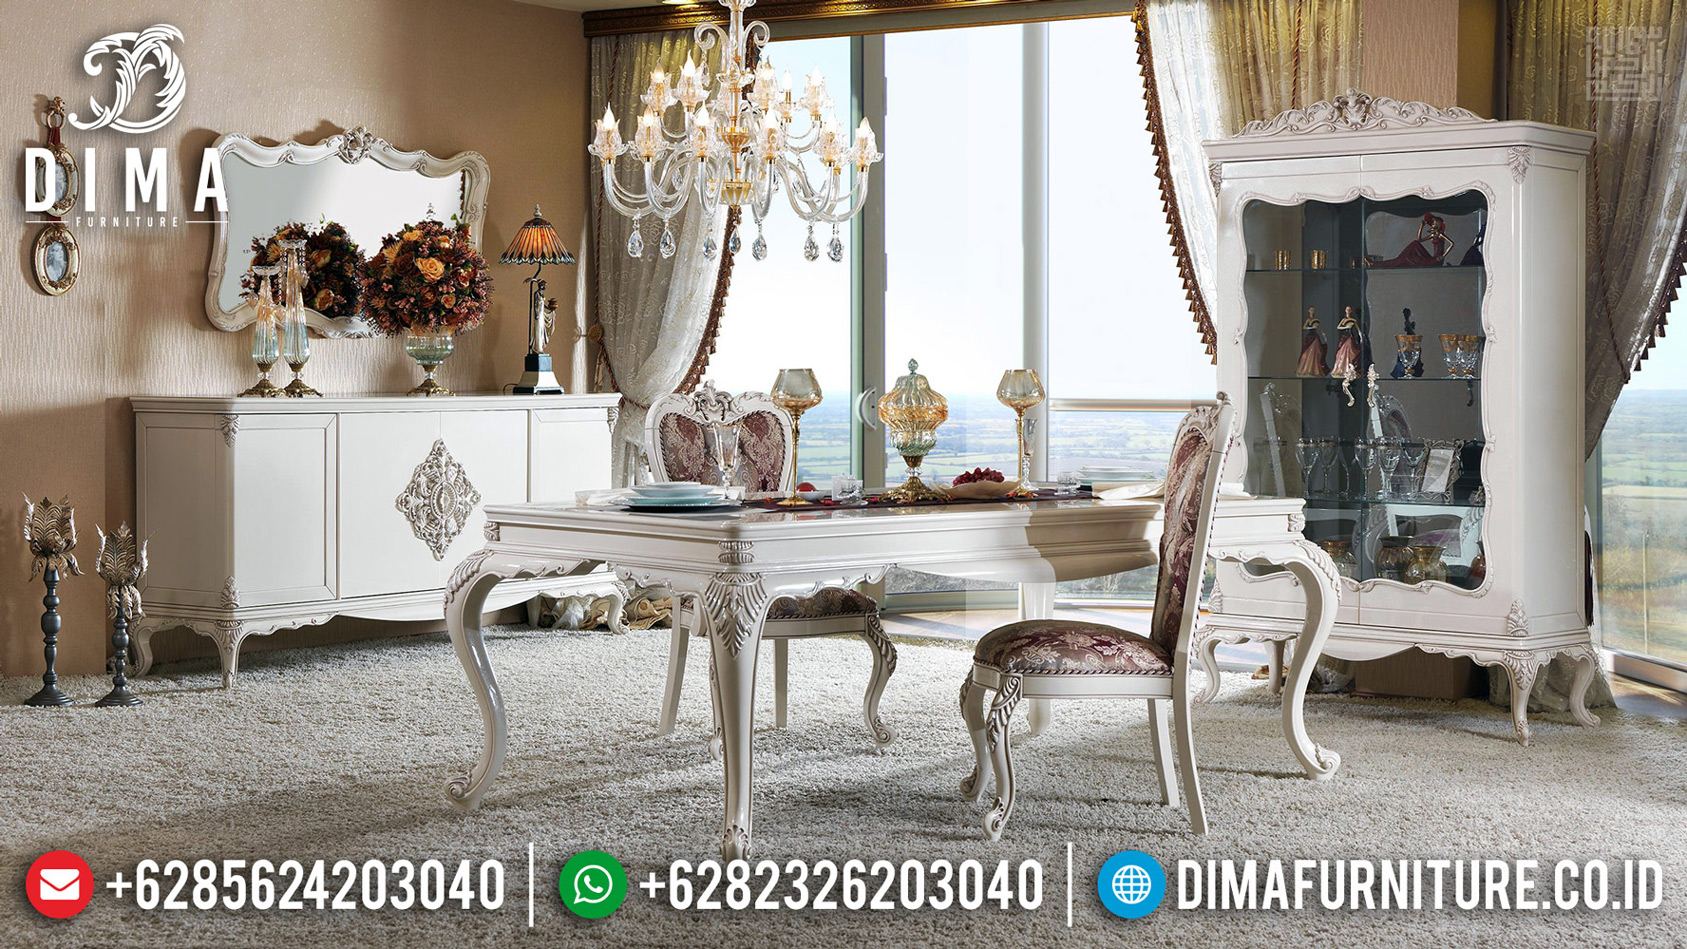 Discount Ramadhan Meja Makan Mewah Ukiran Classic Luxury New Design 2020 MM-0704